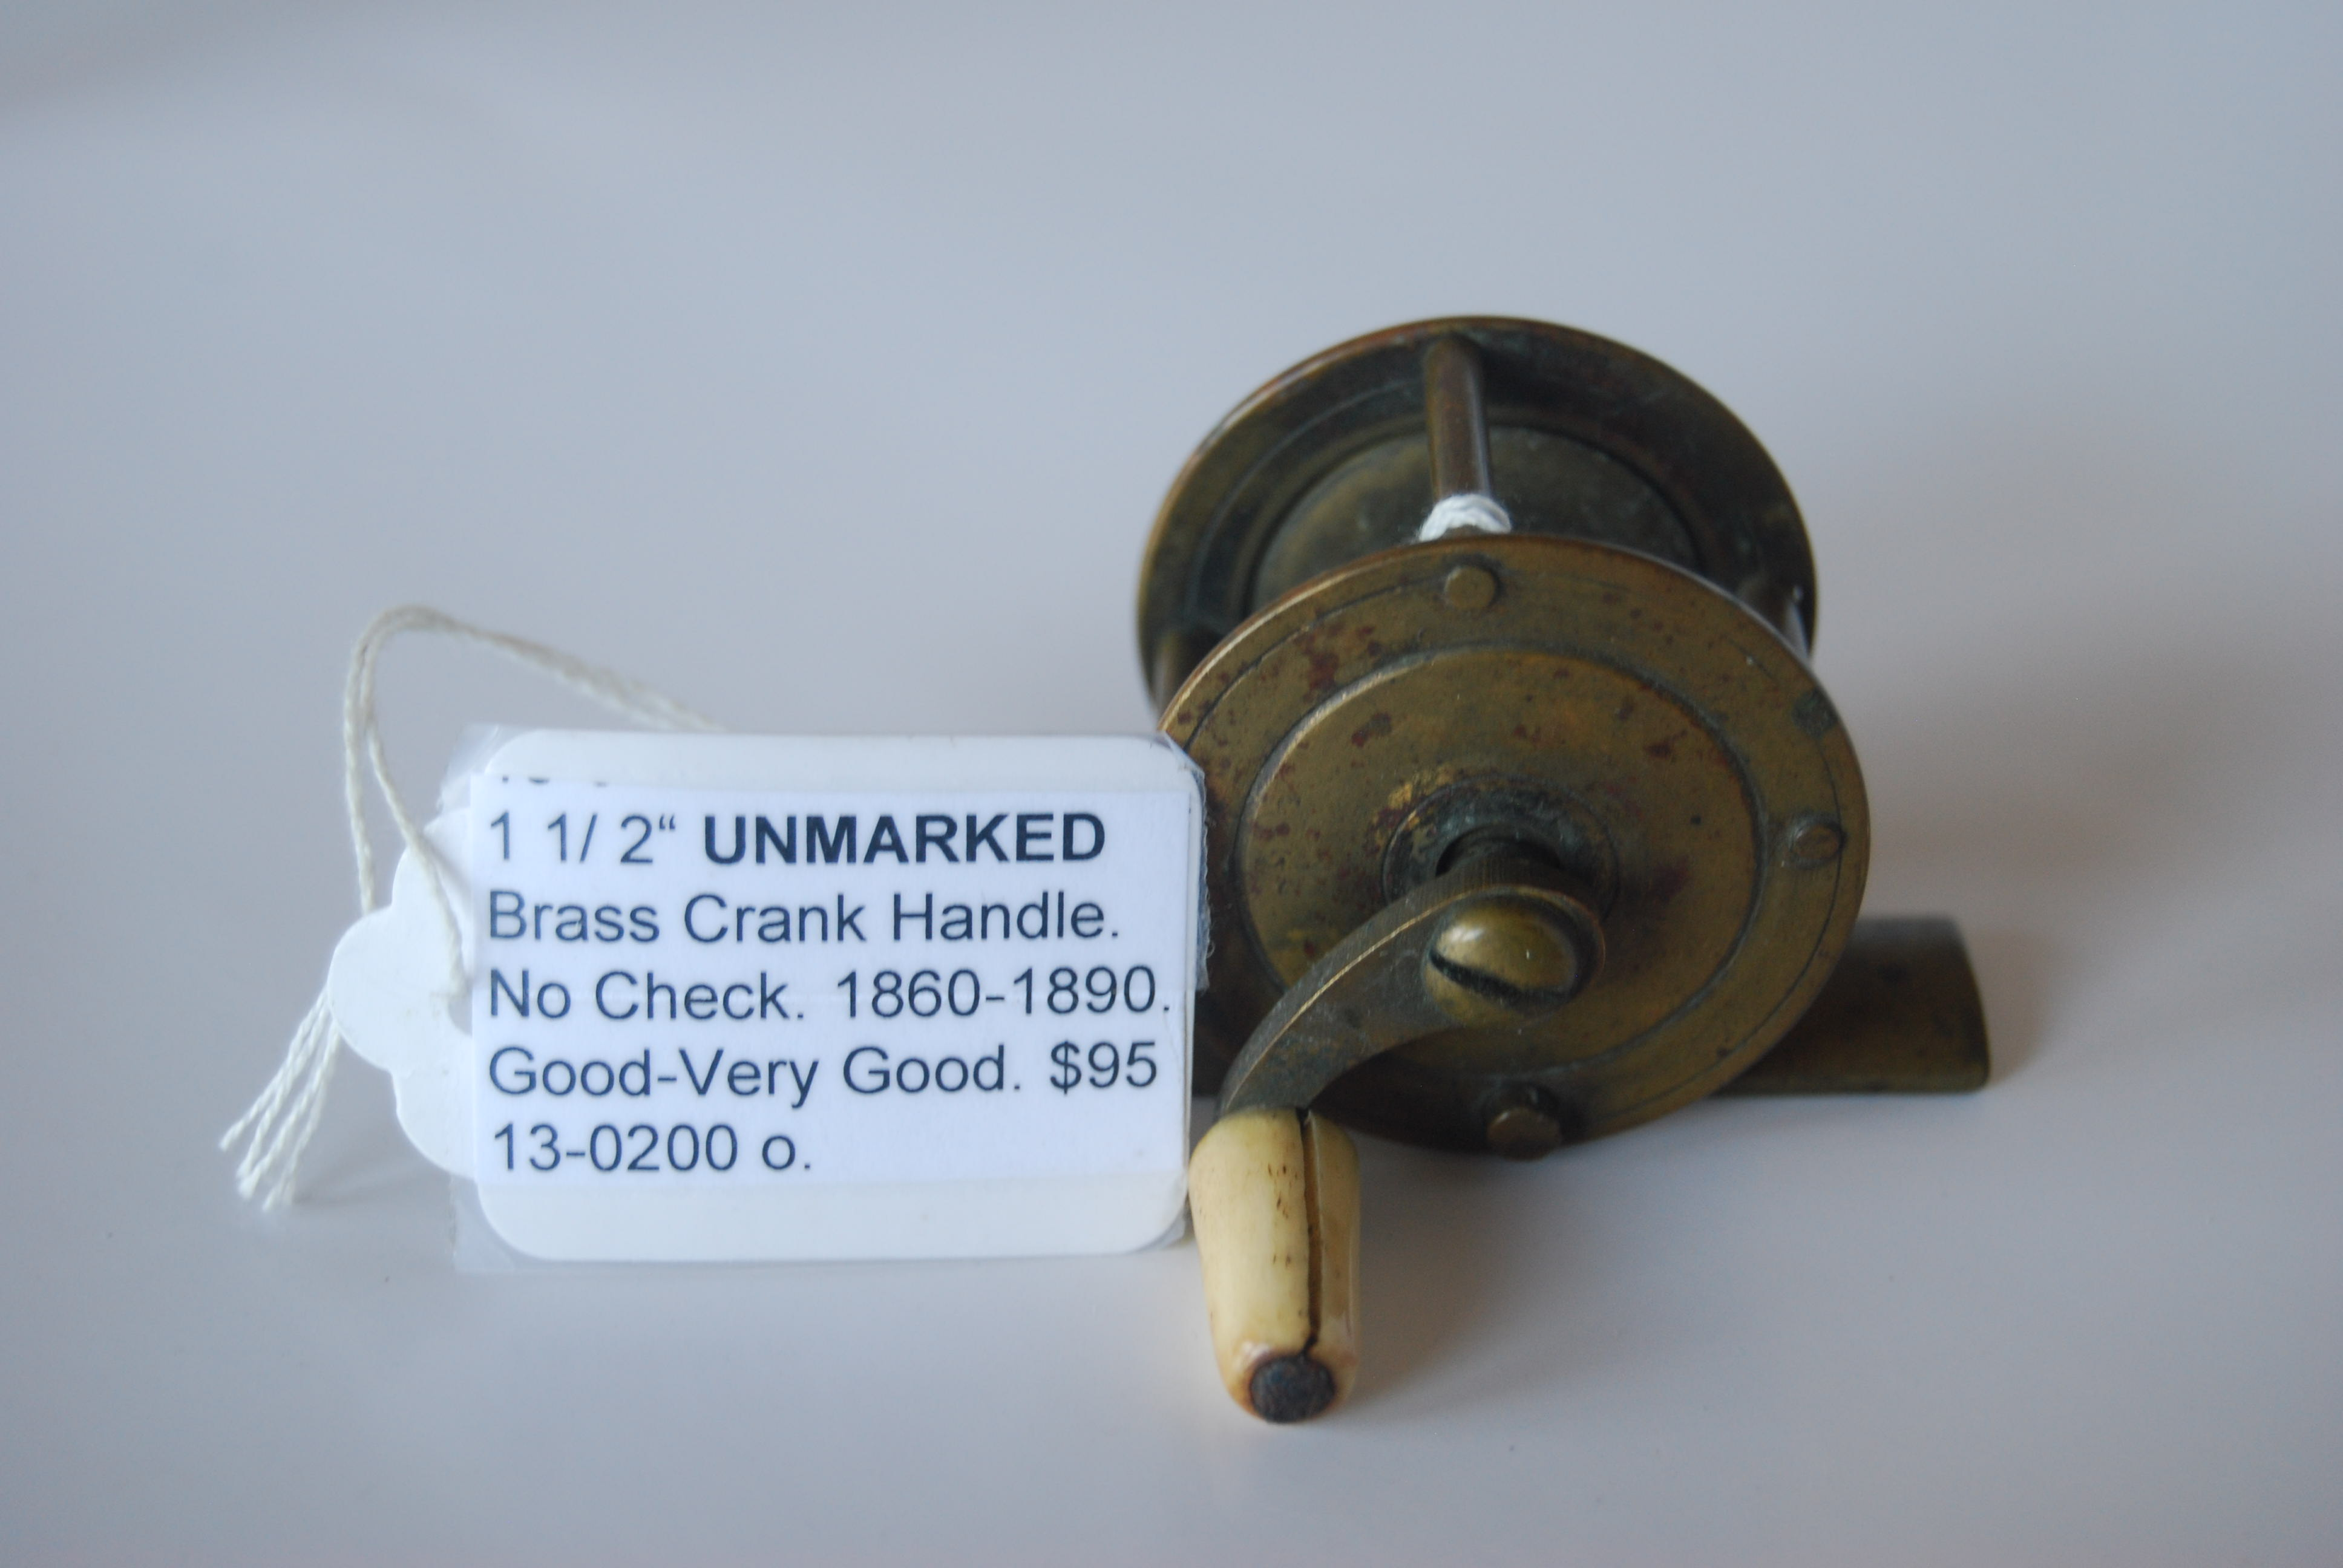 "Image for 1 1/2"" UNMARKED Brass Crank-handle reel. 7/8 in. pillars; No Check; White Bone knob on curved crank handle; Circa 1860-1890. 2 3/8 oz."